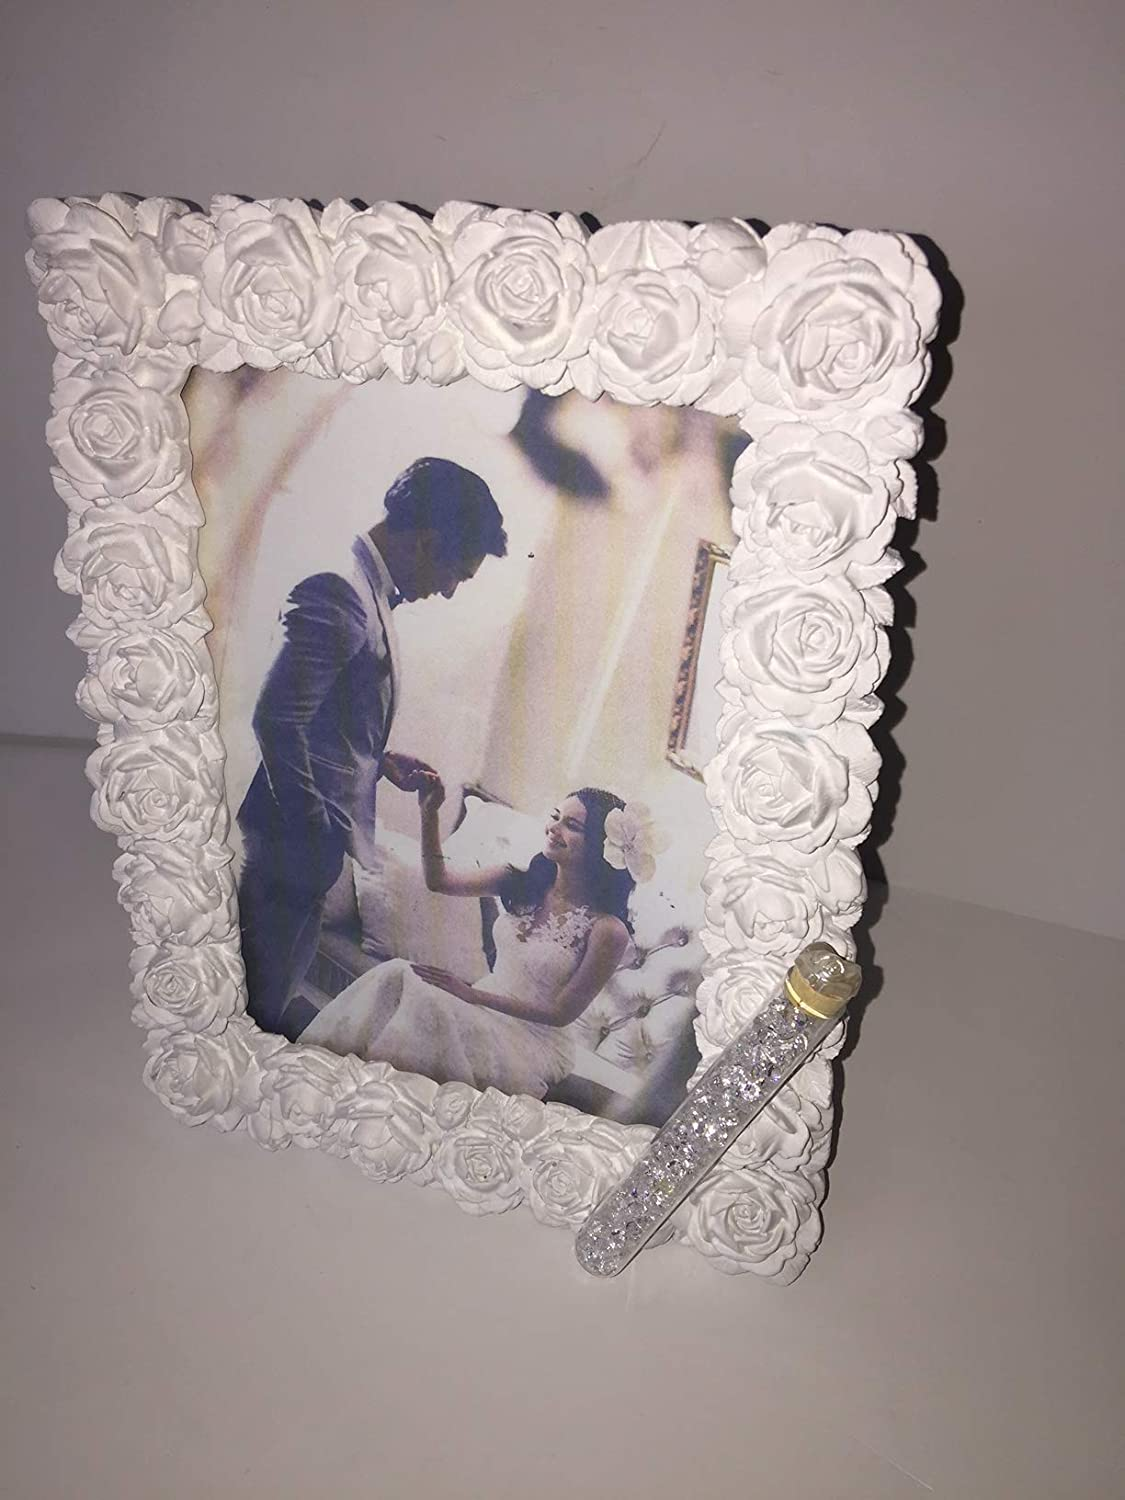 Amazoncom Jewish Wedding White Roses Photo Picture Frame With A